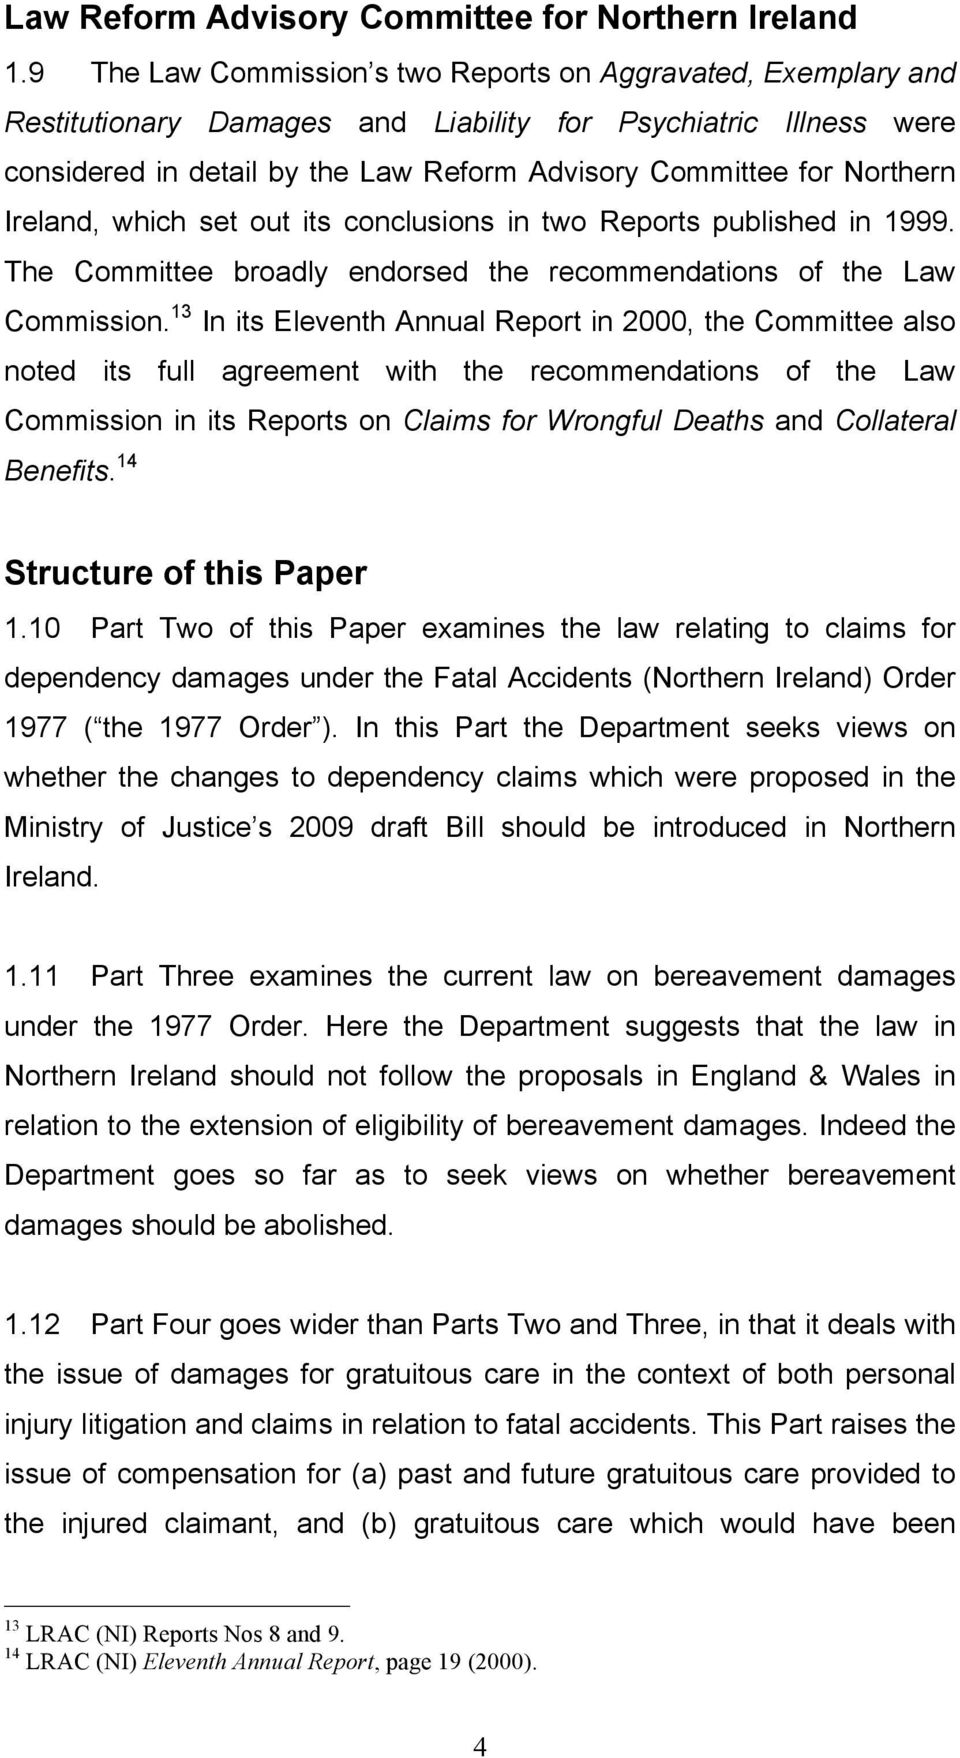 Northern Ireland, which set out its conclusions in two Reports published in 1999. The Committee broadly endorsed the recommendations of the Law Commission.